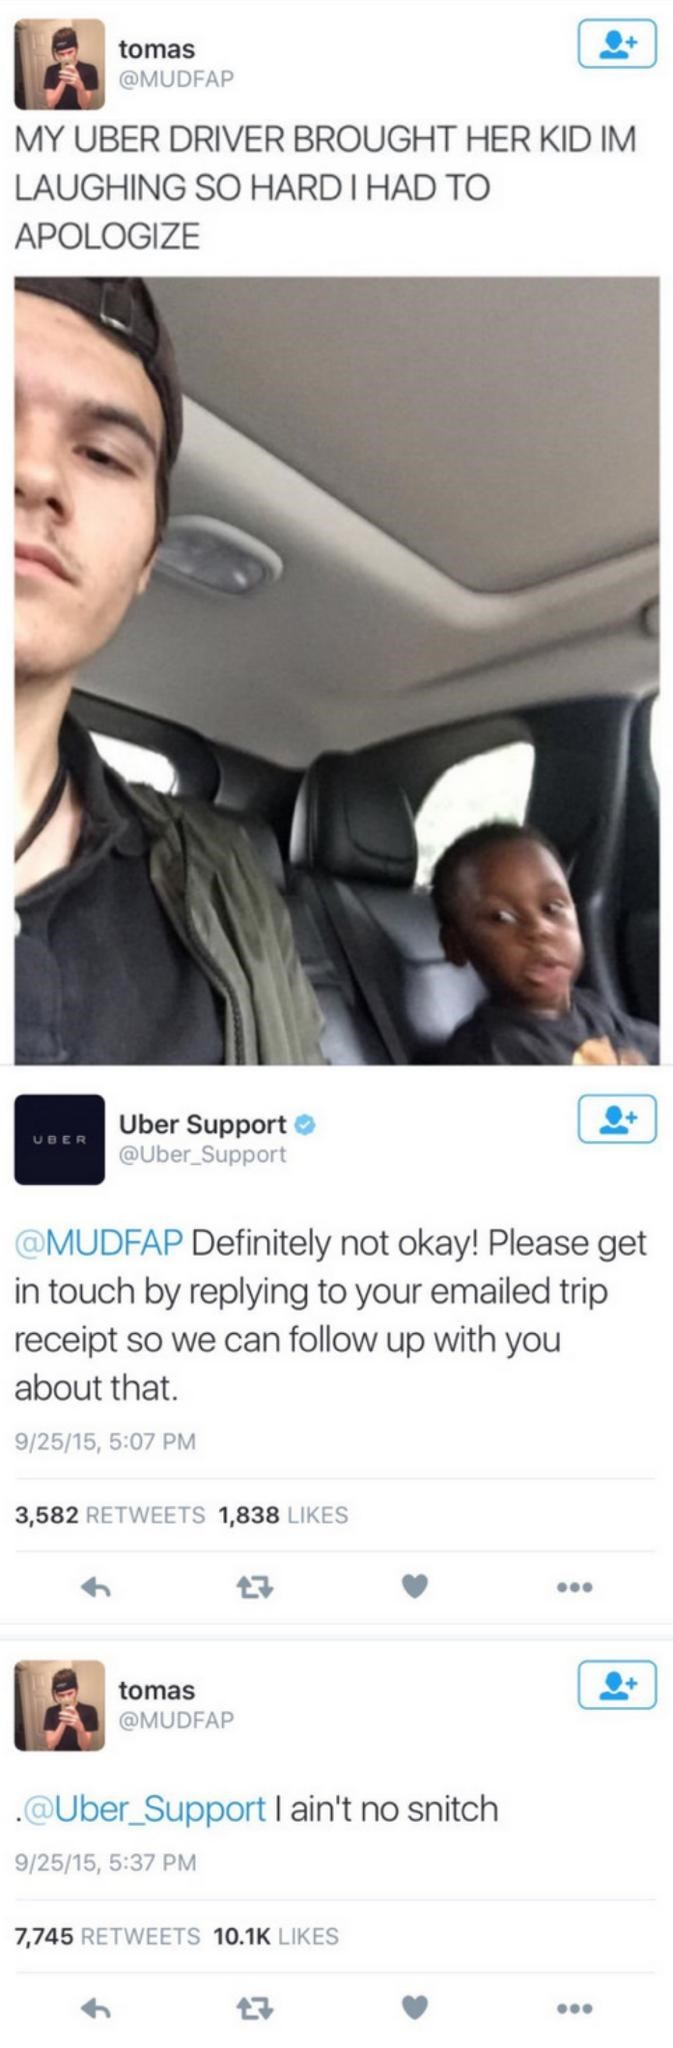 Product - tomas @MUDFAP MY UBER DRIVER BROUGHT HER KID IM LAUGHING SO HARDI HAD TO APOLOGIZE Uber Support O @Uber_Support UBER @MUDFAP Definitely not okay! Please get in touch by replying to your emailed trip receipt so we can follow up with you about that. 9/25/15, 5:07 PM 3,582 RETWEETS 1,838 LIKES tomas @MUDFAP .@Uber_SupportI ain't no snitch 9/25/15, 5:37 PM 7,745 RETWEETS 10.1K LIKES